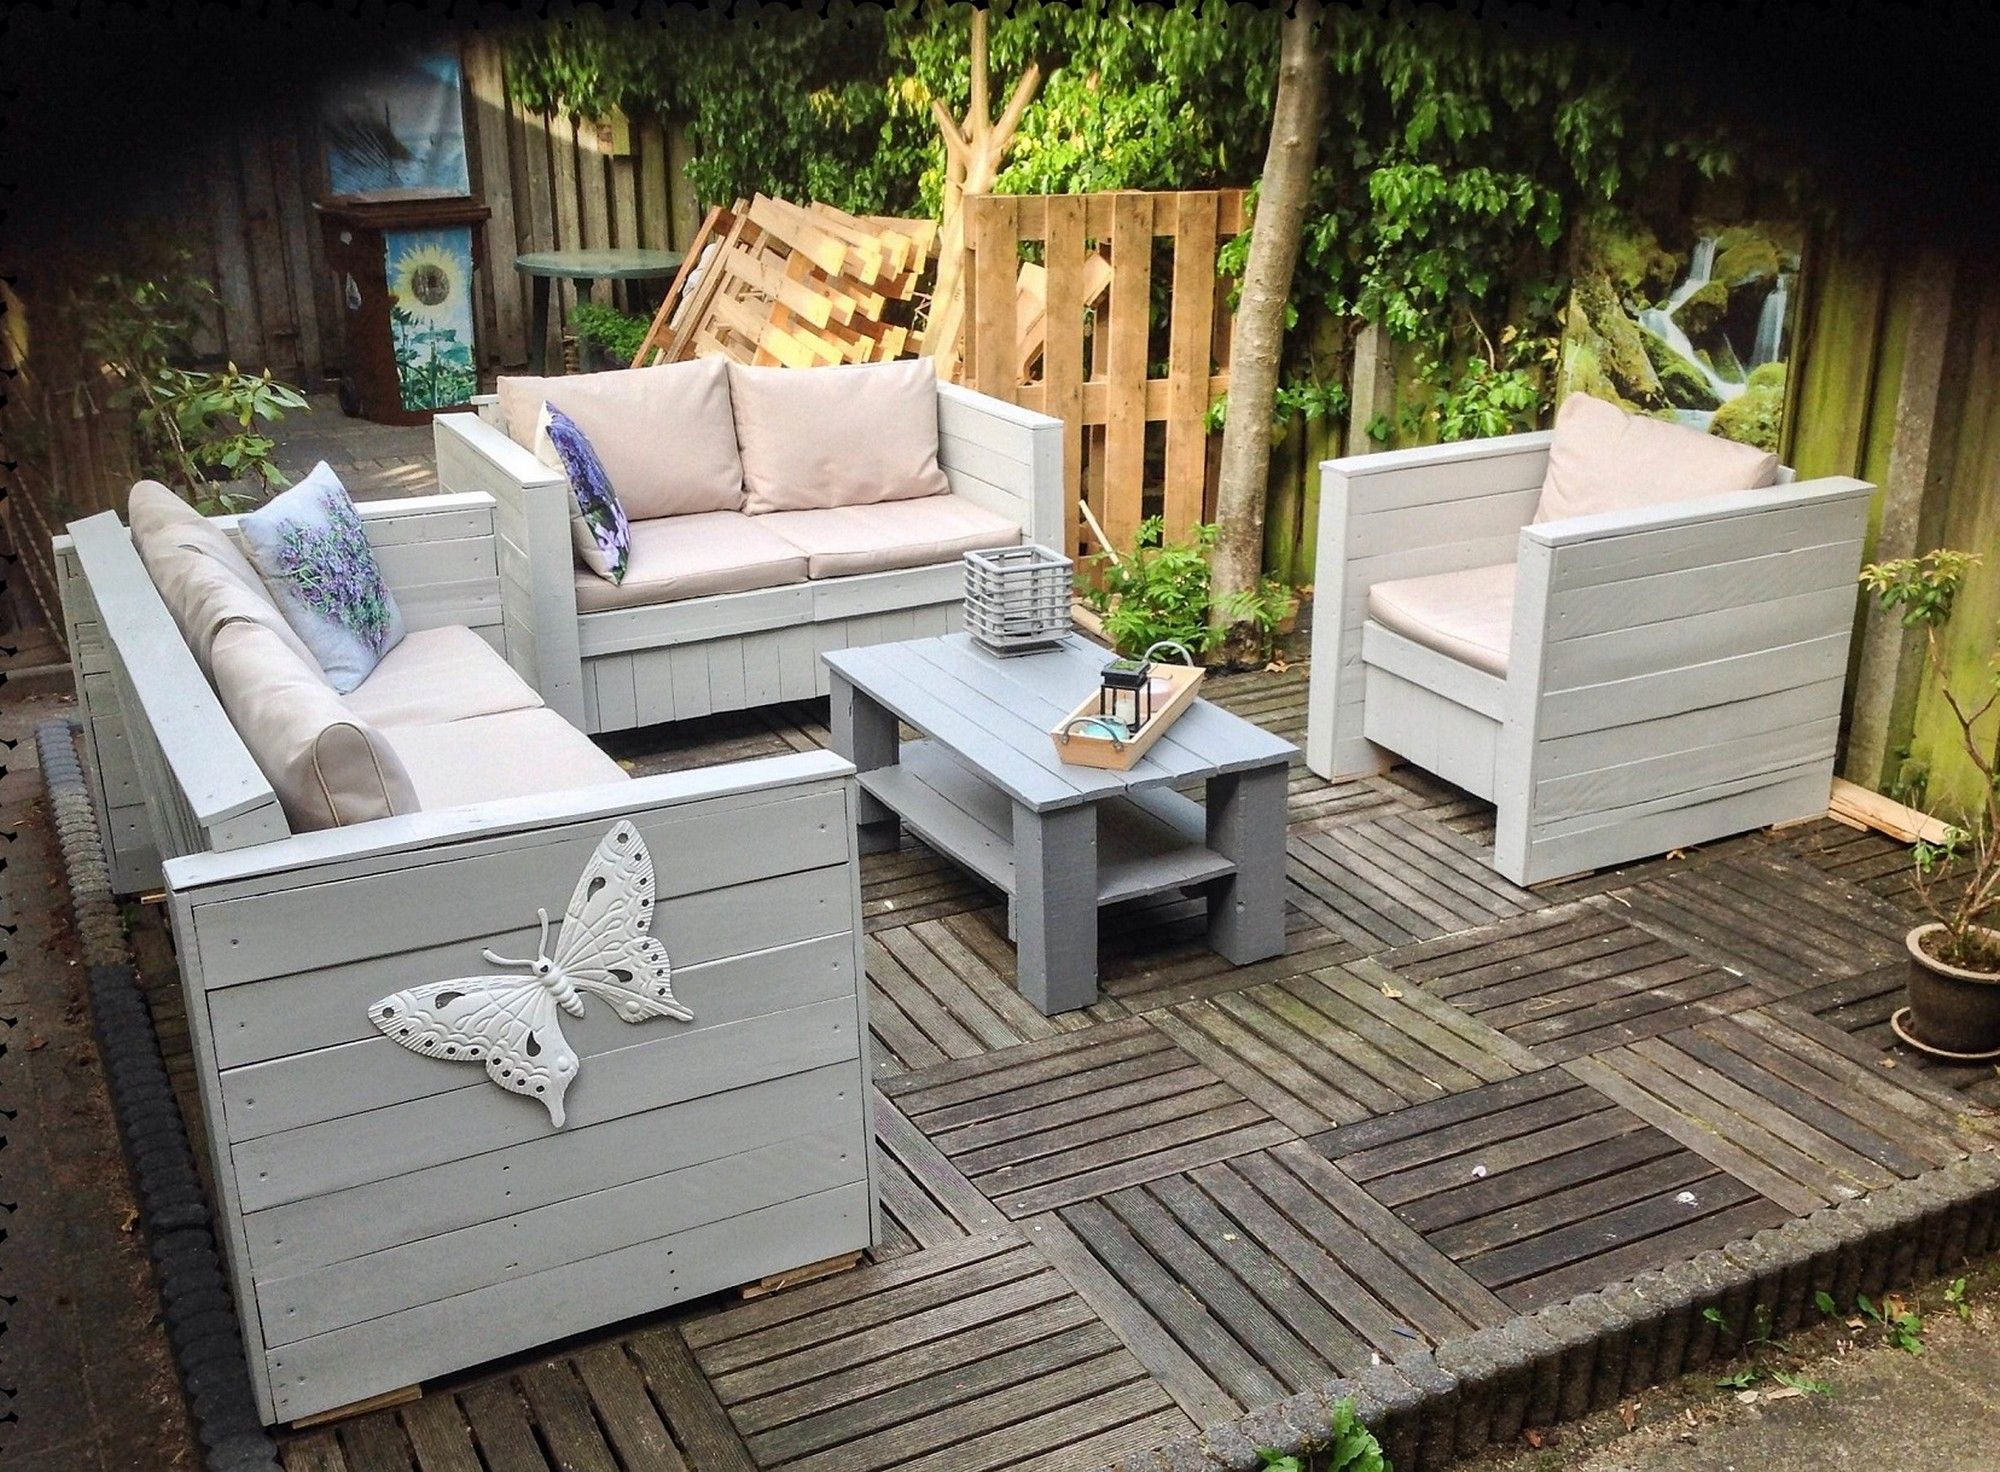 wooden pallet outdoor furniture. Outdoor Furniture From Pallets. 150 Creative Diy Wooden Pallet Designs - Recycled Chair O